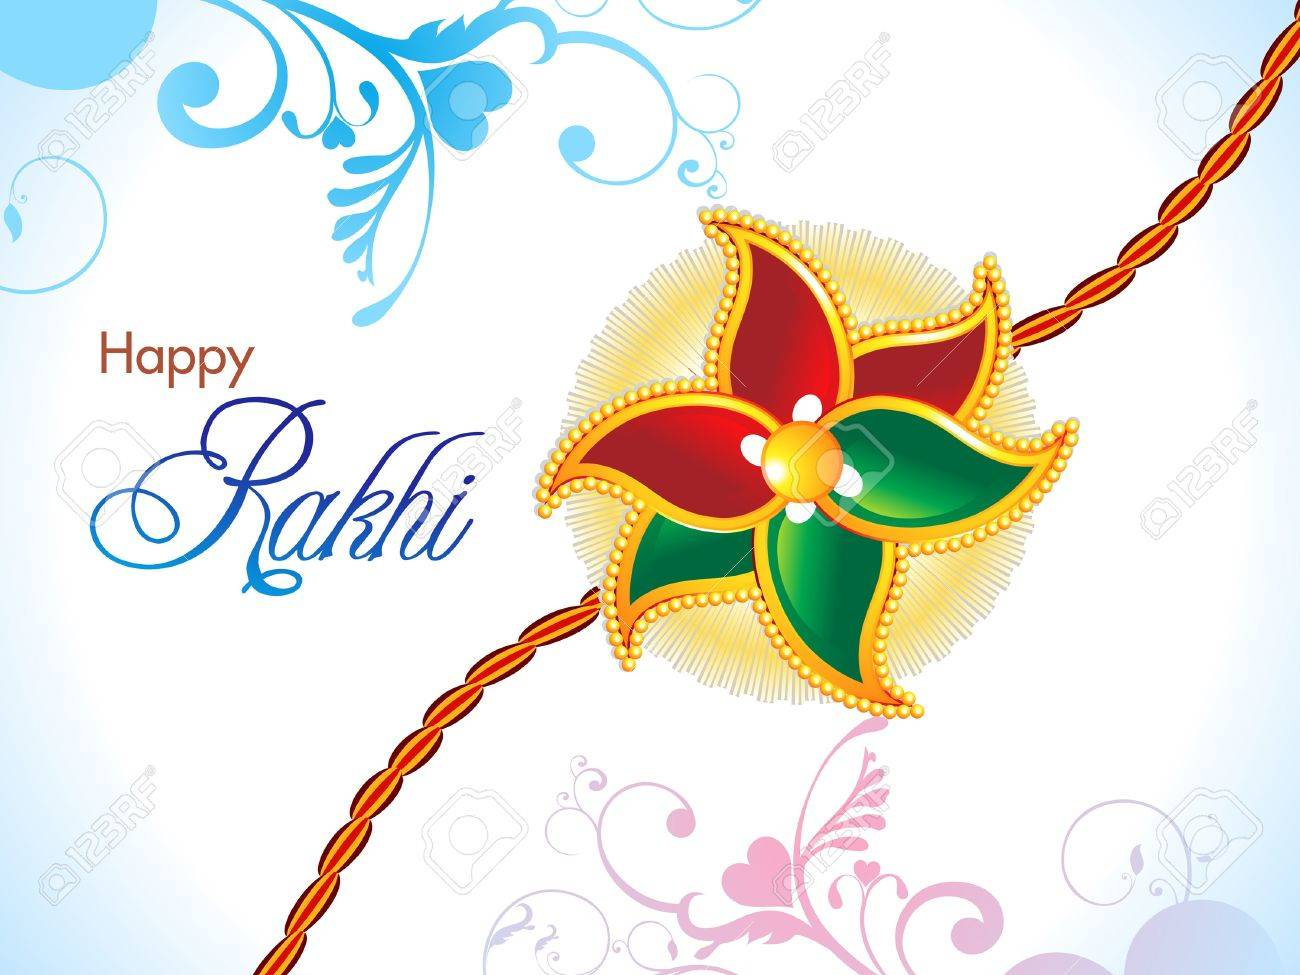 Abstract Raksha Bandhan Wallpaper Illustration Royalty Free Cliparts